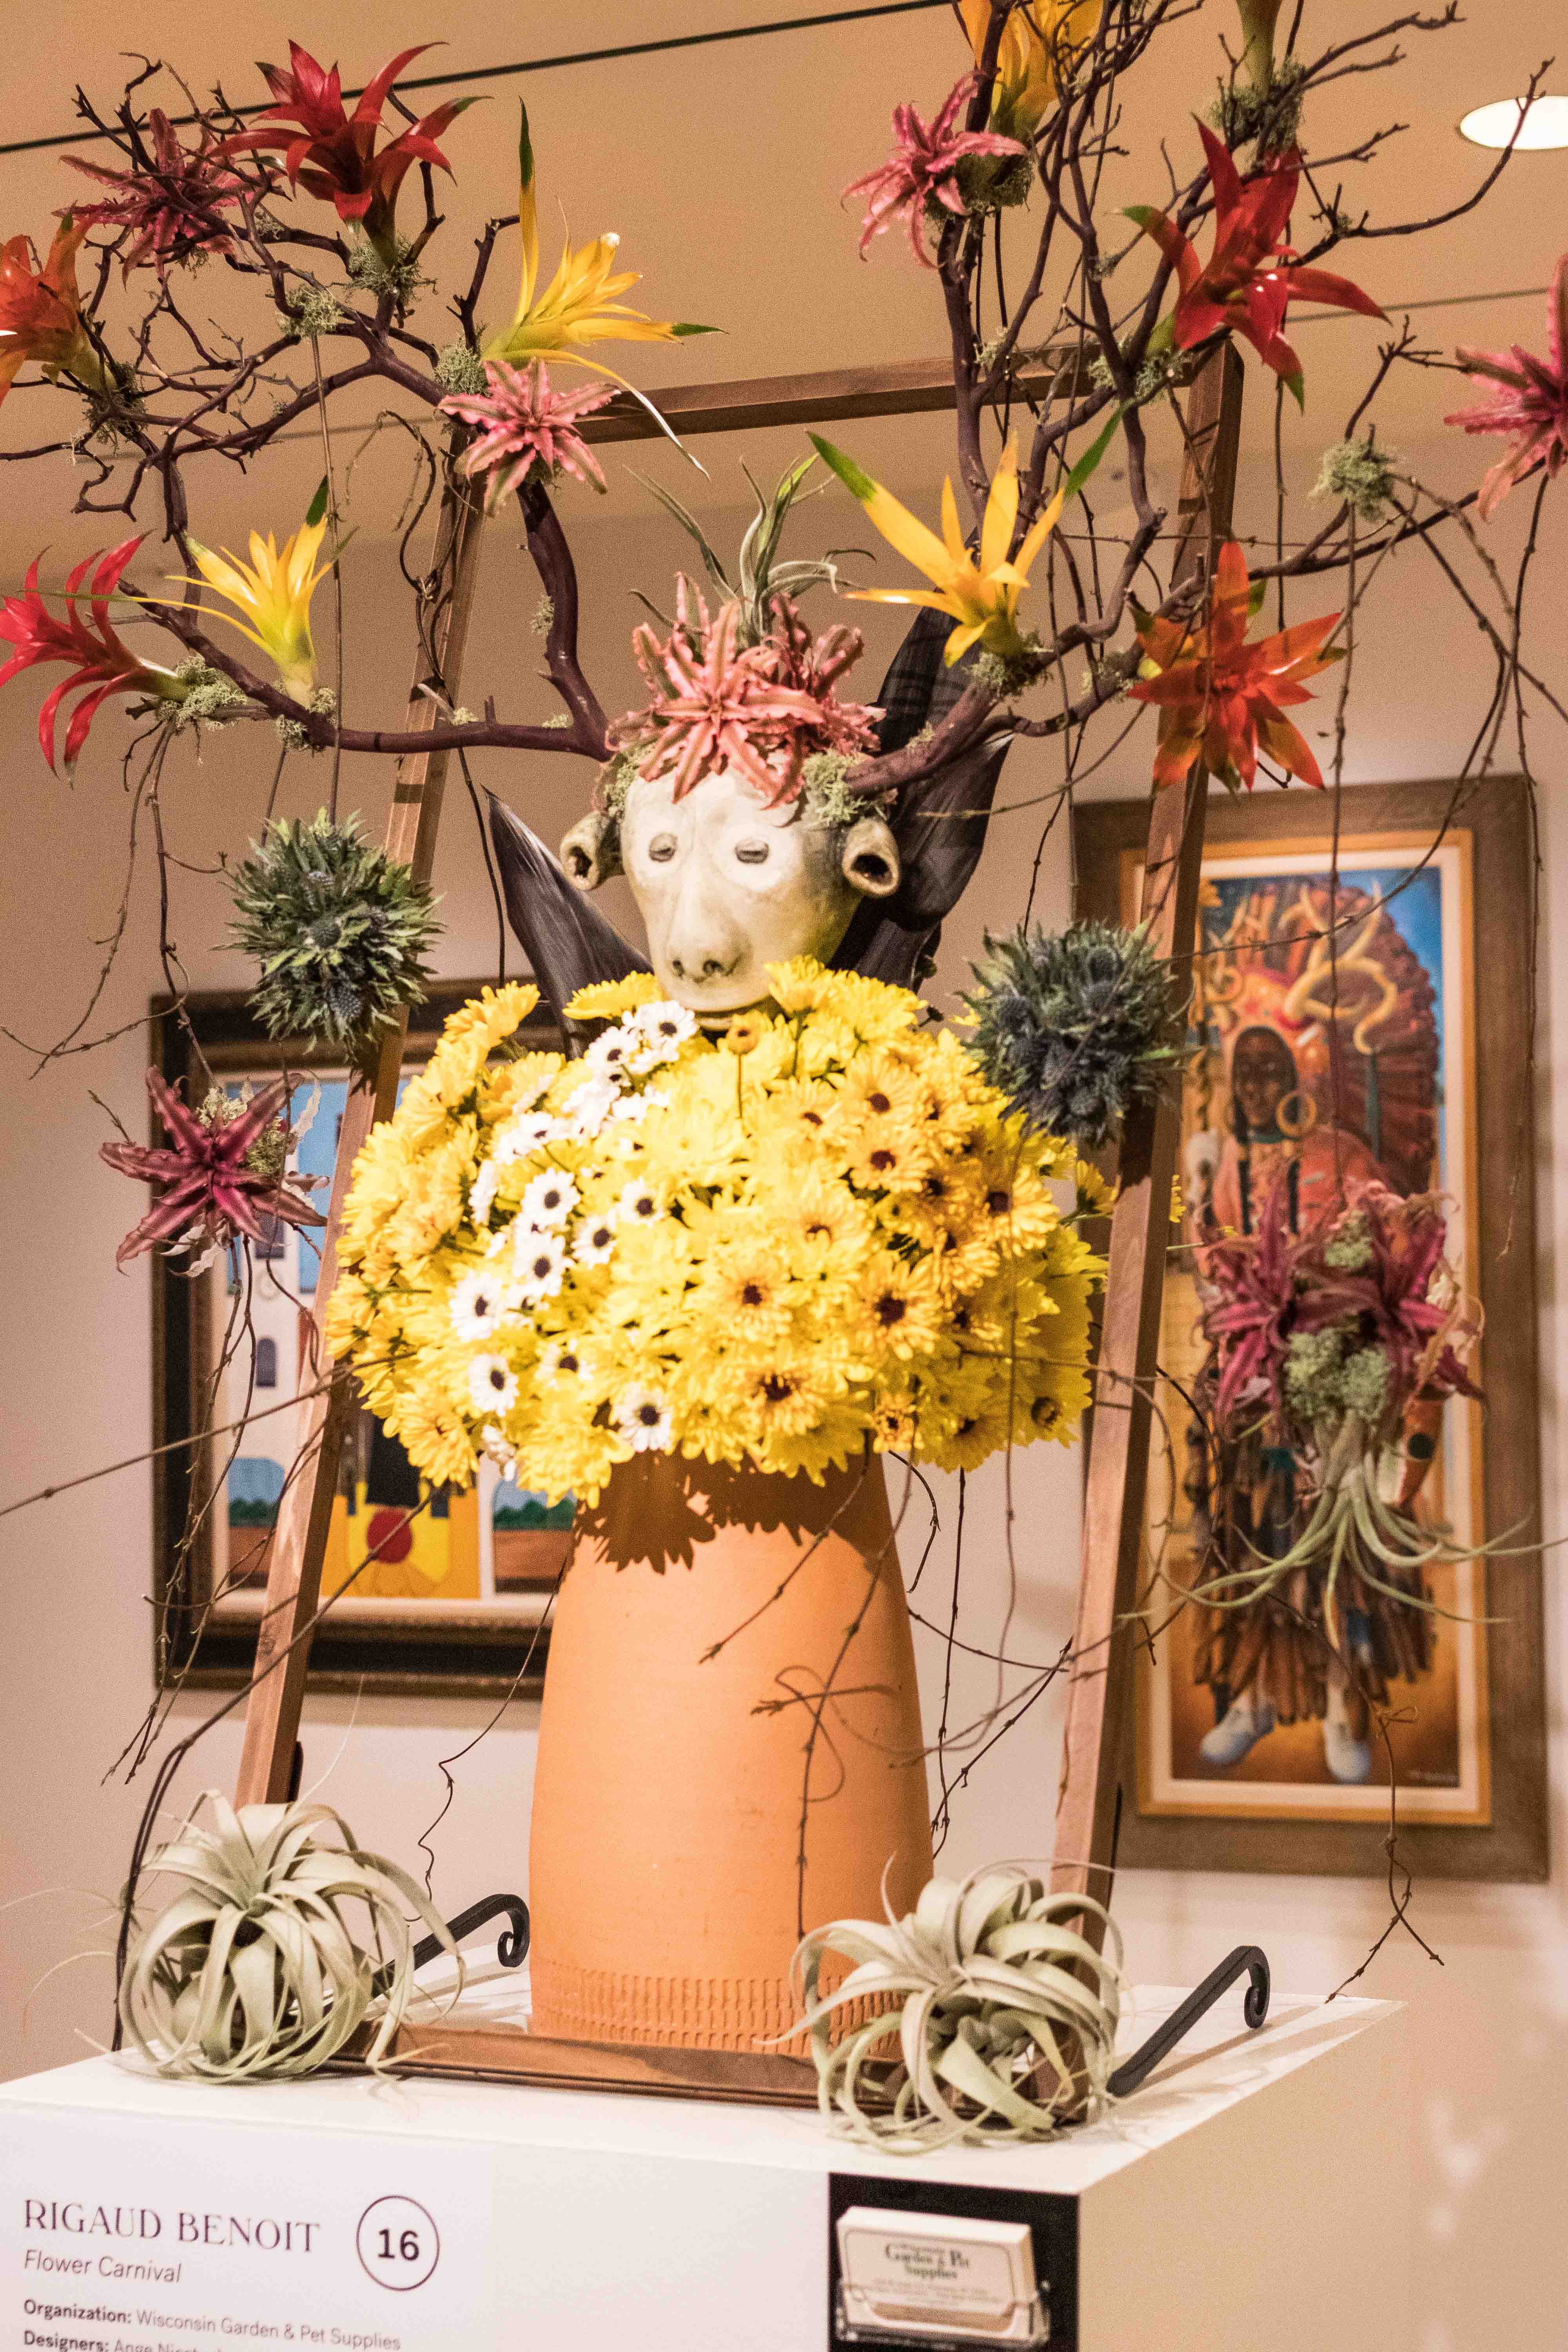 Art in Bloom 2019 at the Milwaukee Art Museum, Milwaukee, WI #ArtinBloom #floralshow #MilwaukeeArtMuseum | https://www.roseclearfield.com